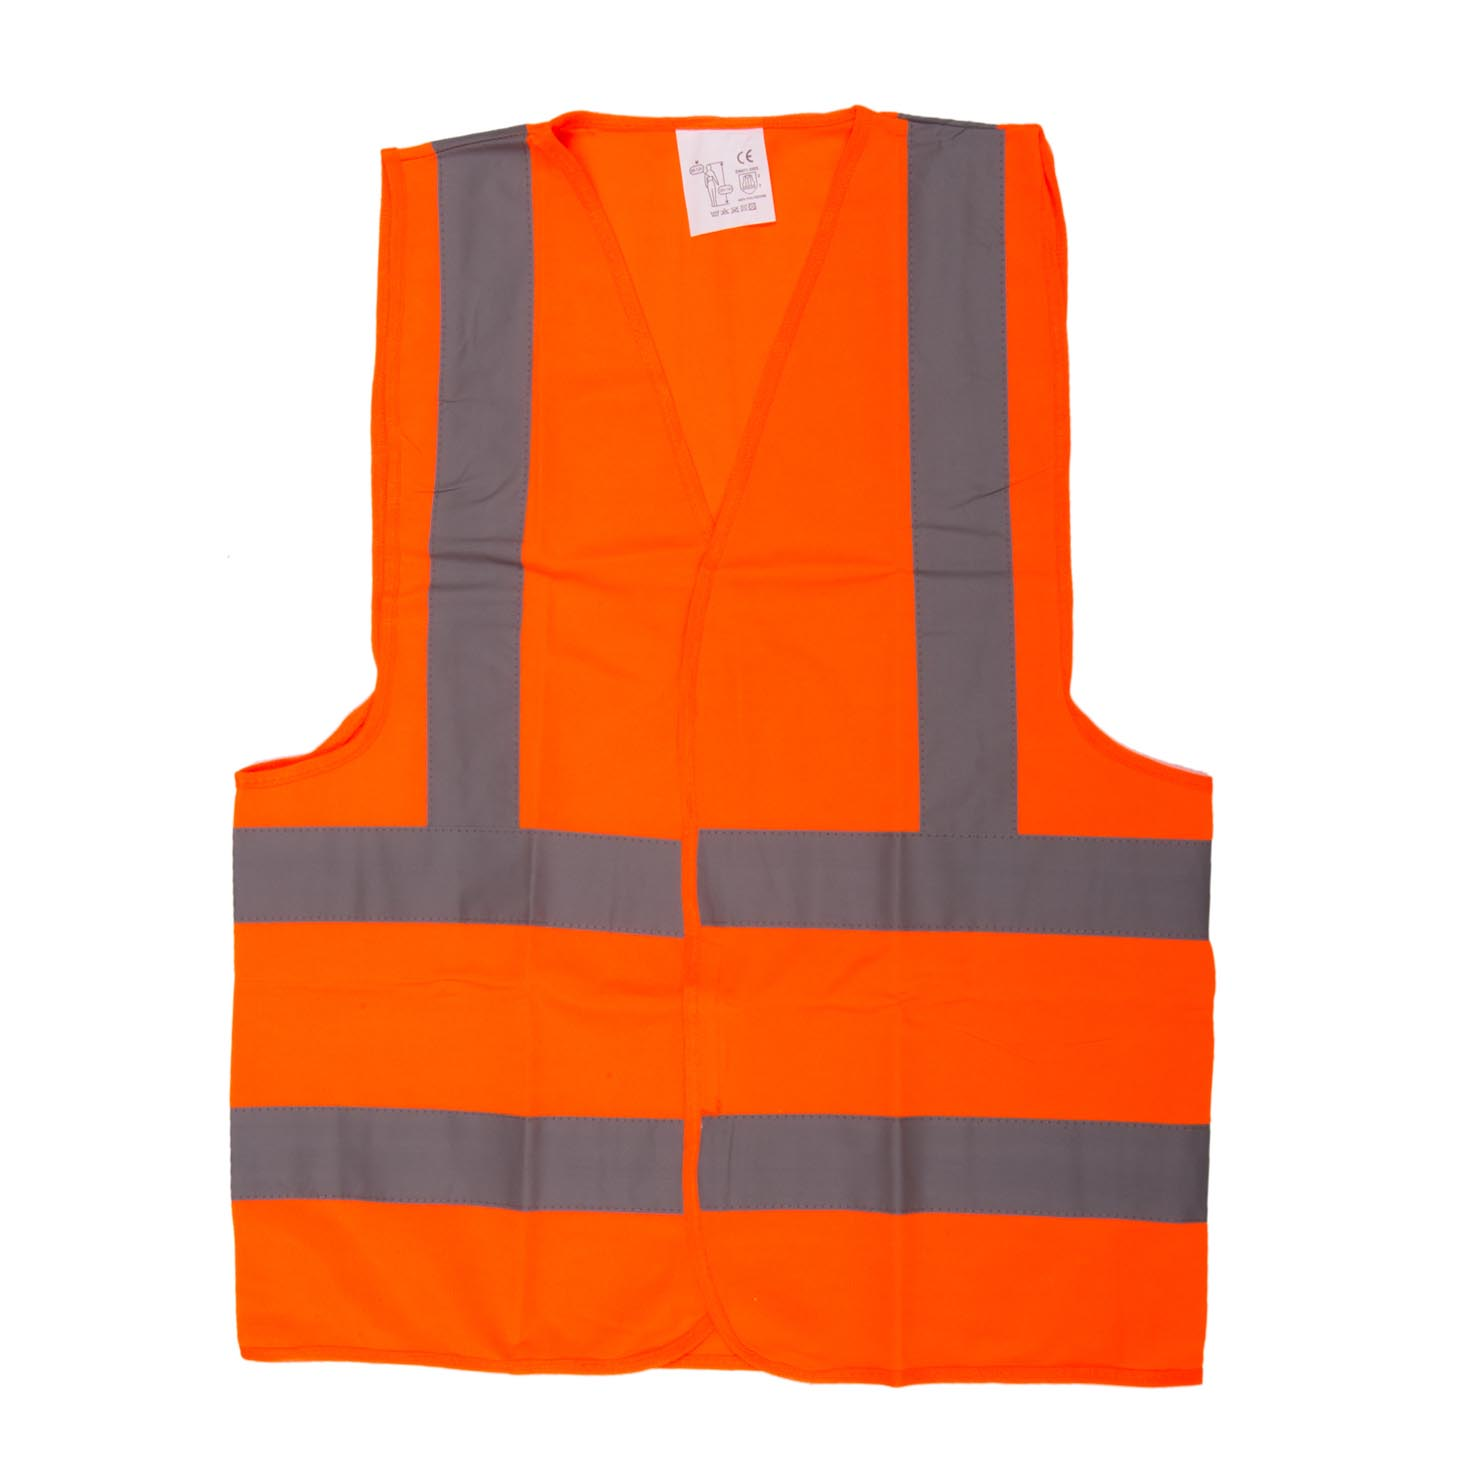 SAFETY JACKET ORANGE FABRIC TYPE - MEDIUM